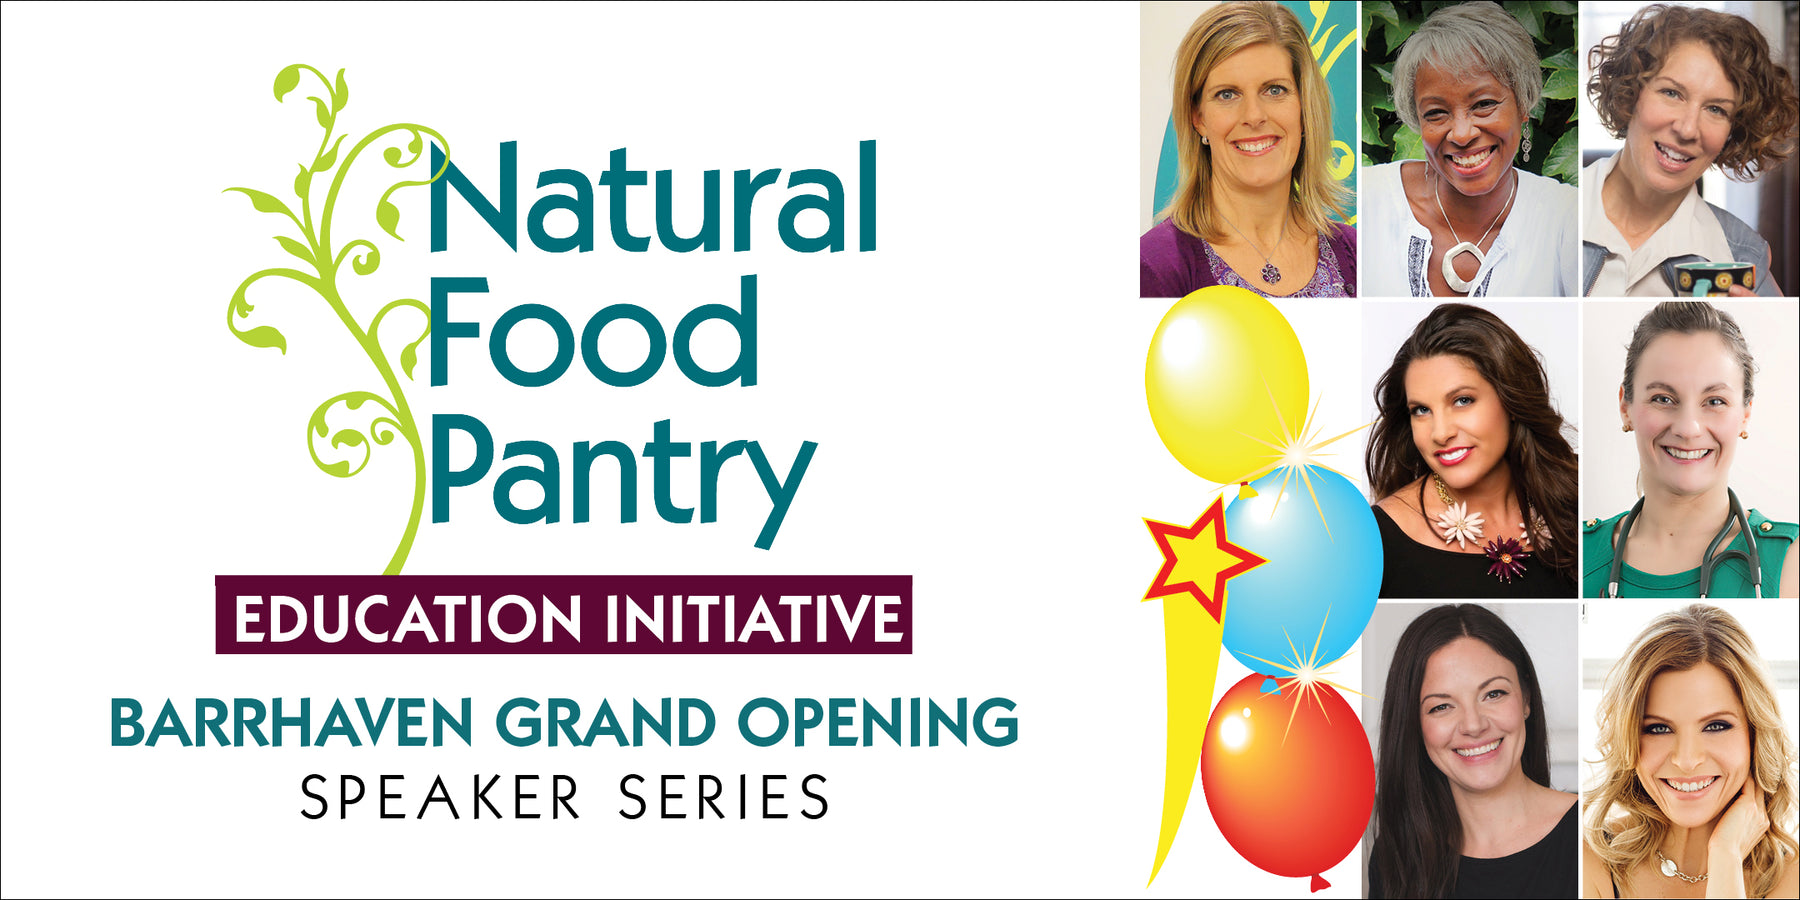 Mar 24 & 25:  GRAND OPENING SPEAKER SERIES - NFP Barrhaven